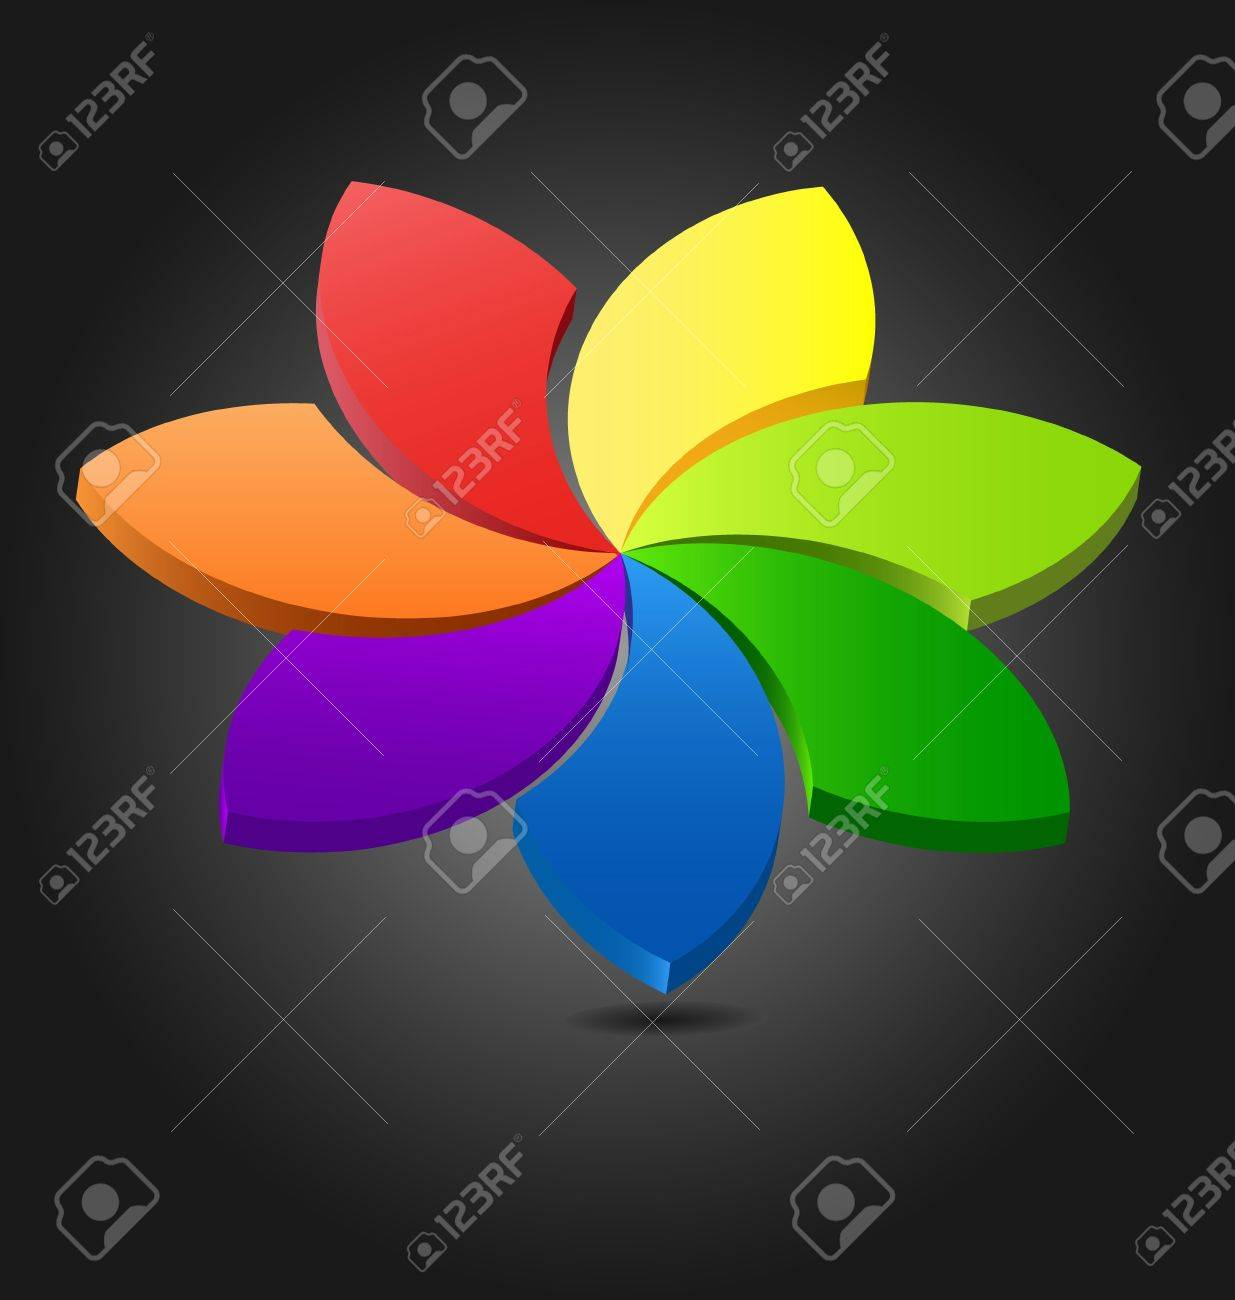 Design Of A 3D Flower Color Creative Wheel